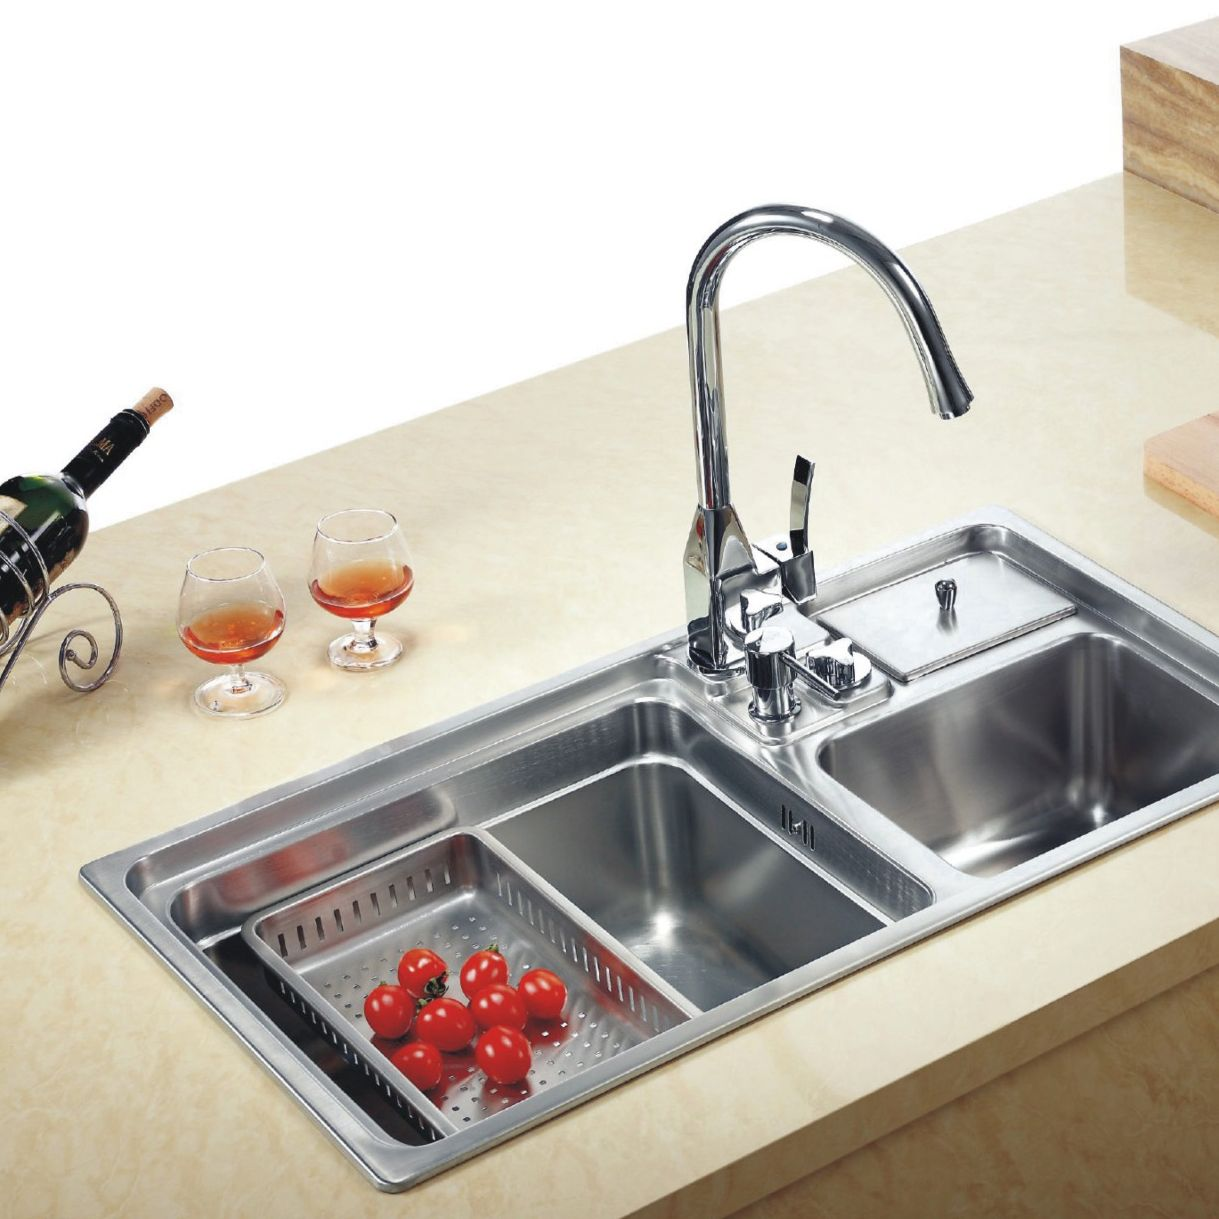 Kitchen Sink With Vegetable Drainage Saves On Colander Storage